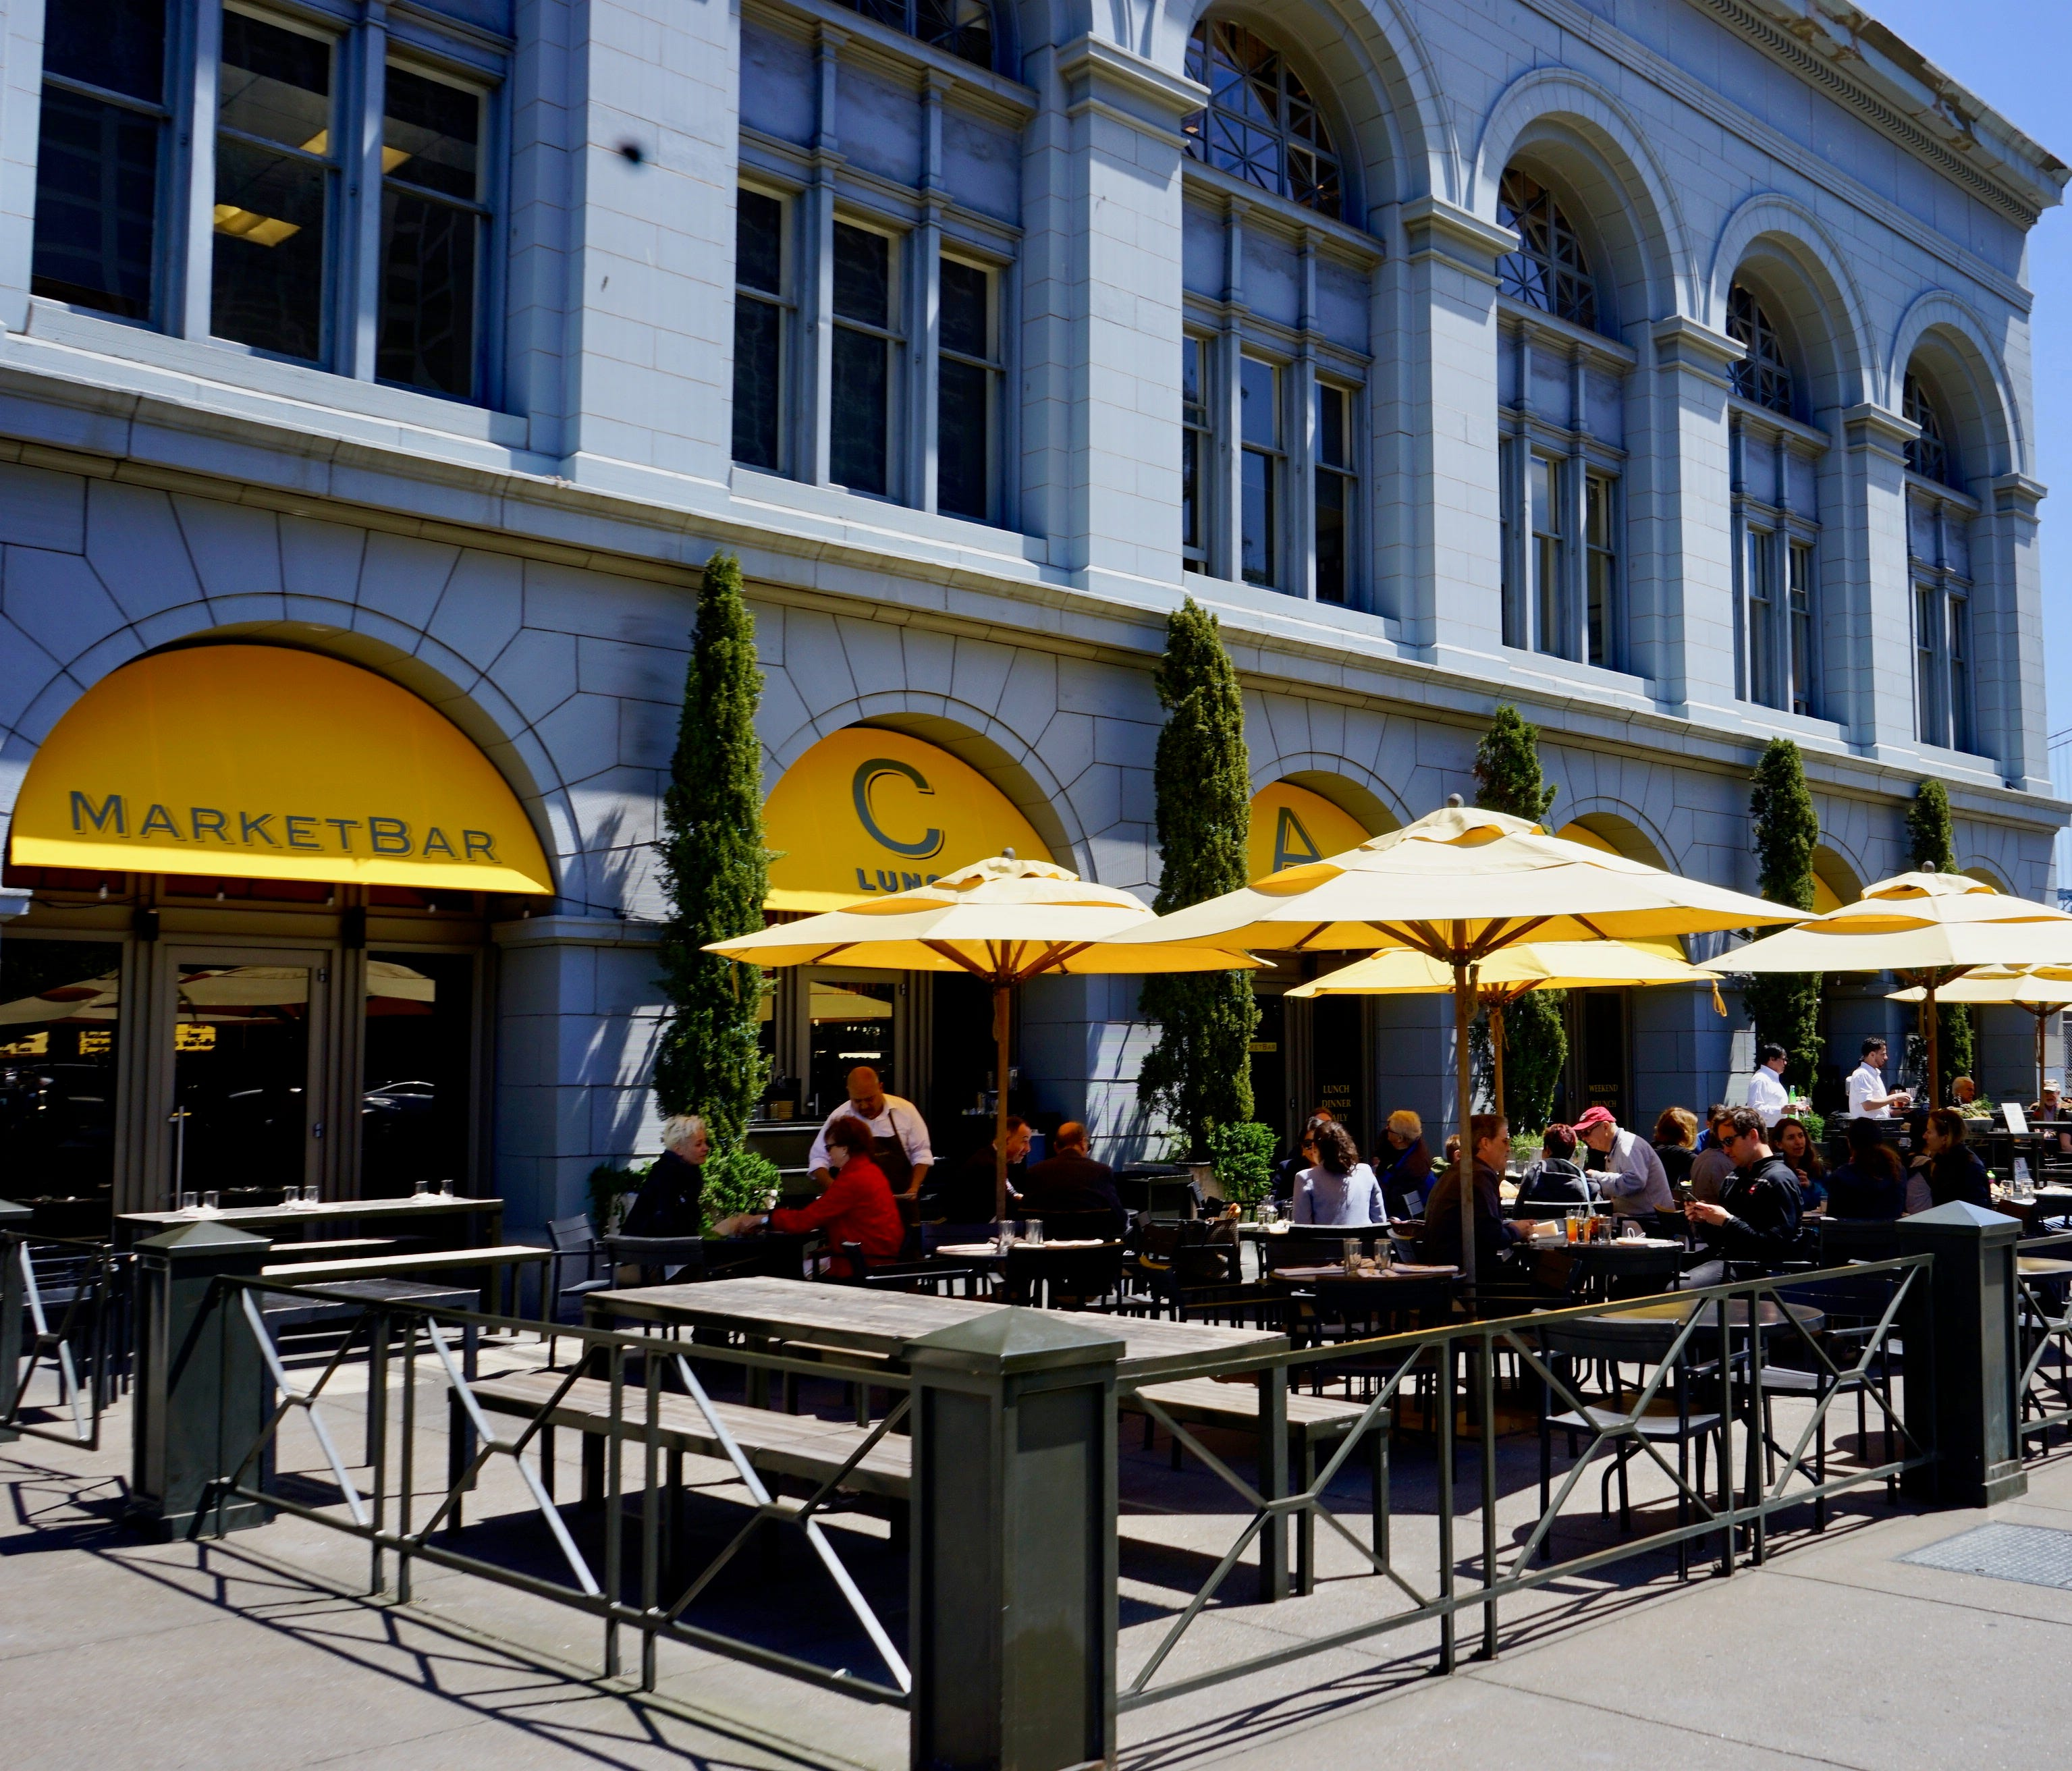 At the front of the building, MarketBar serves upscale seasonal fare inspired by the range of ingredients available at the farmers market.